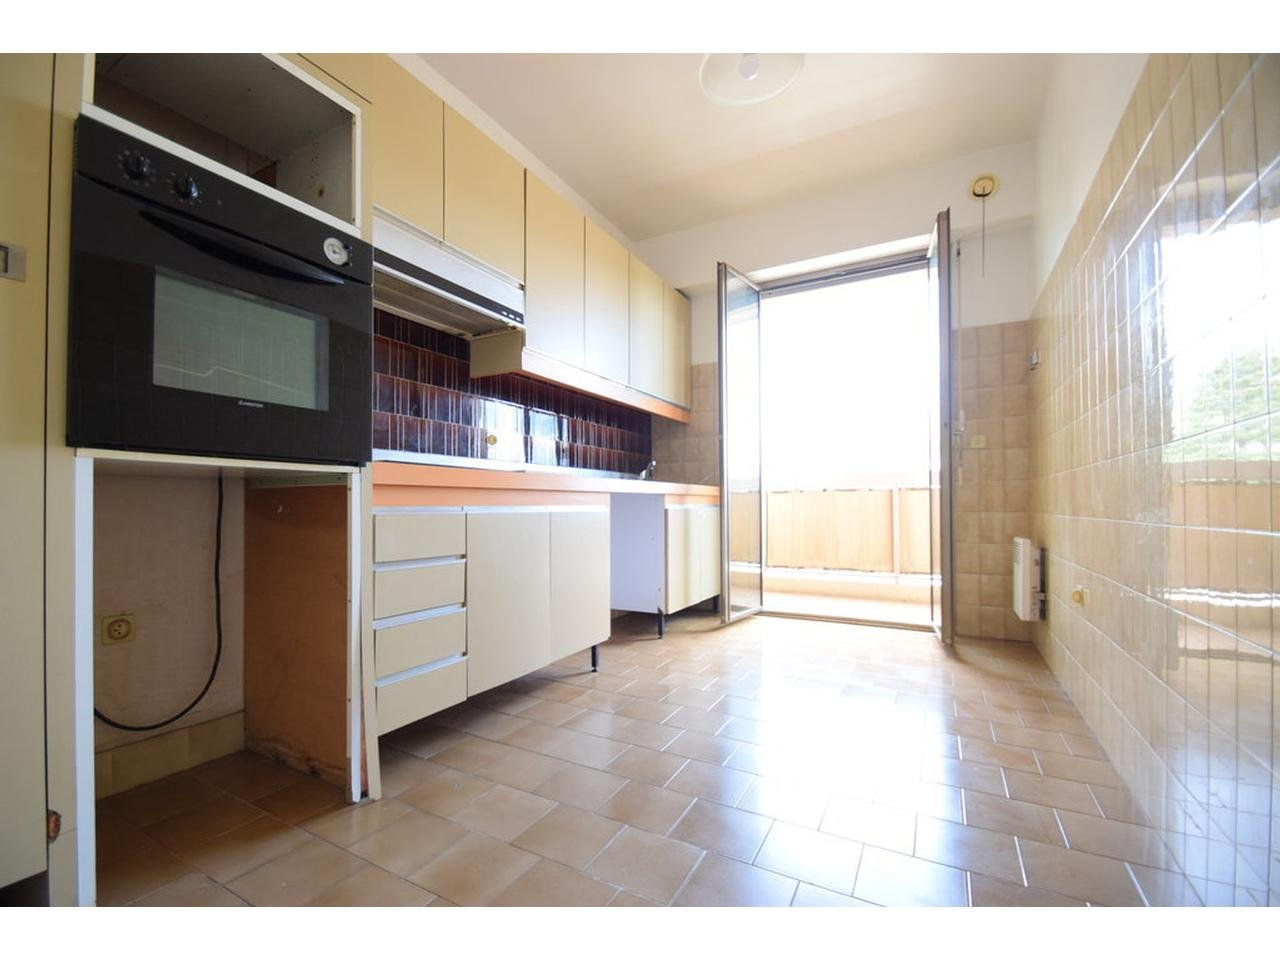 Appartement  2 Rooms 60m2  for sale   285 000 €